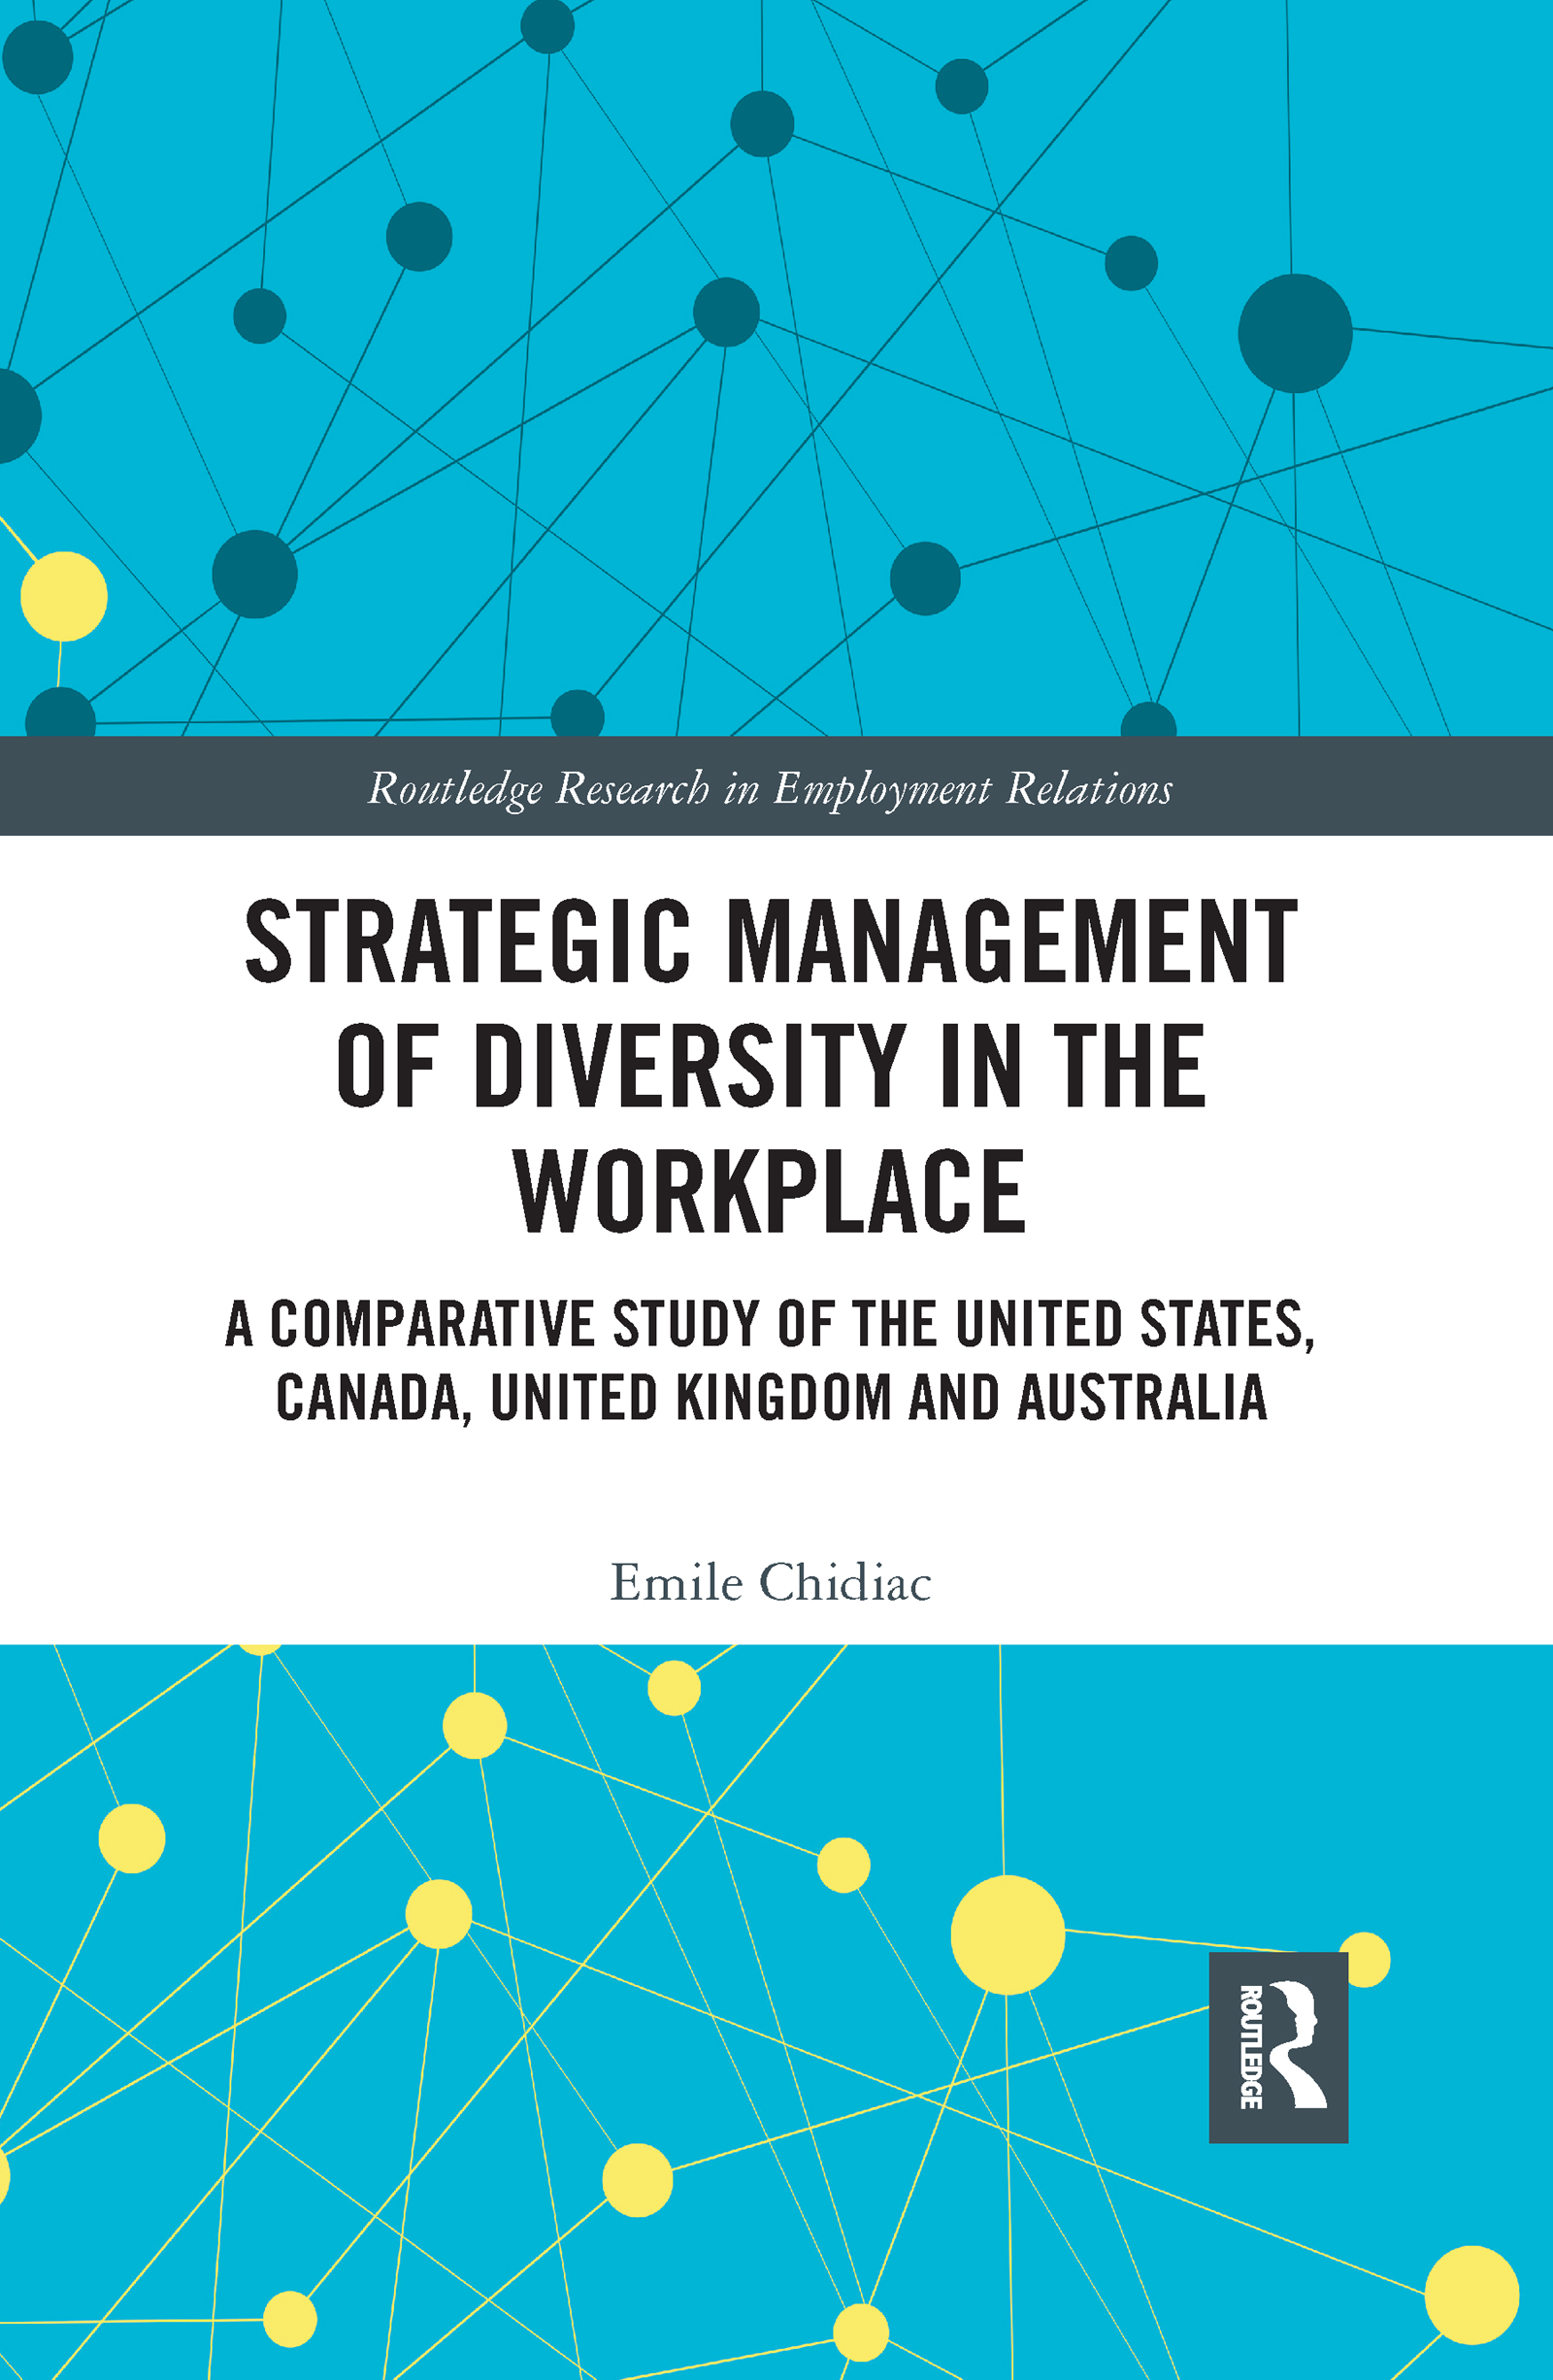 Strategic Management of Diversity in the Workplace